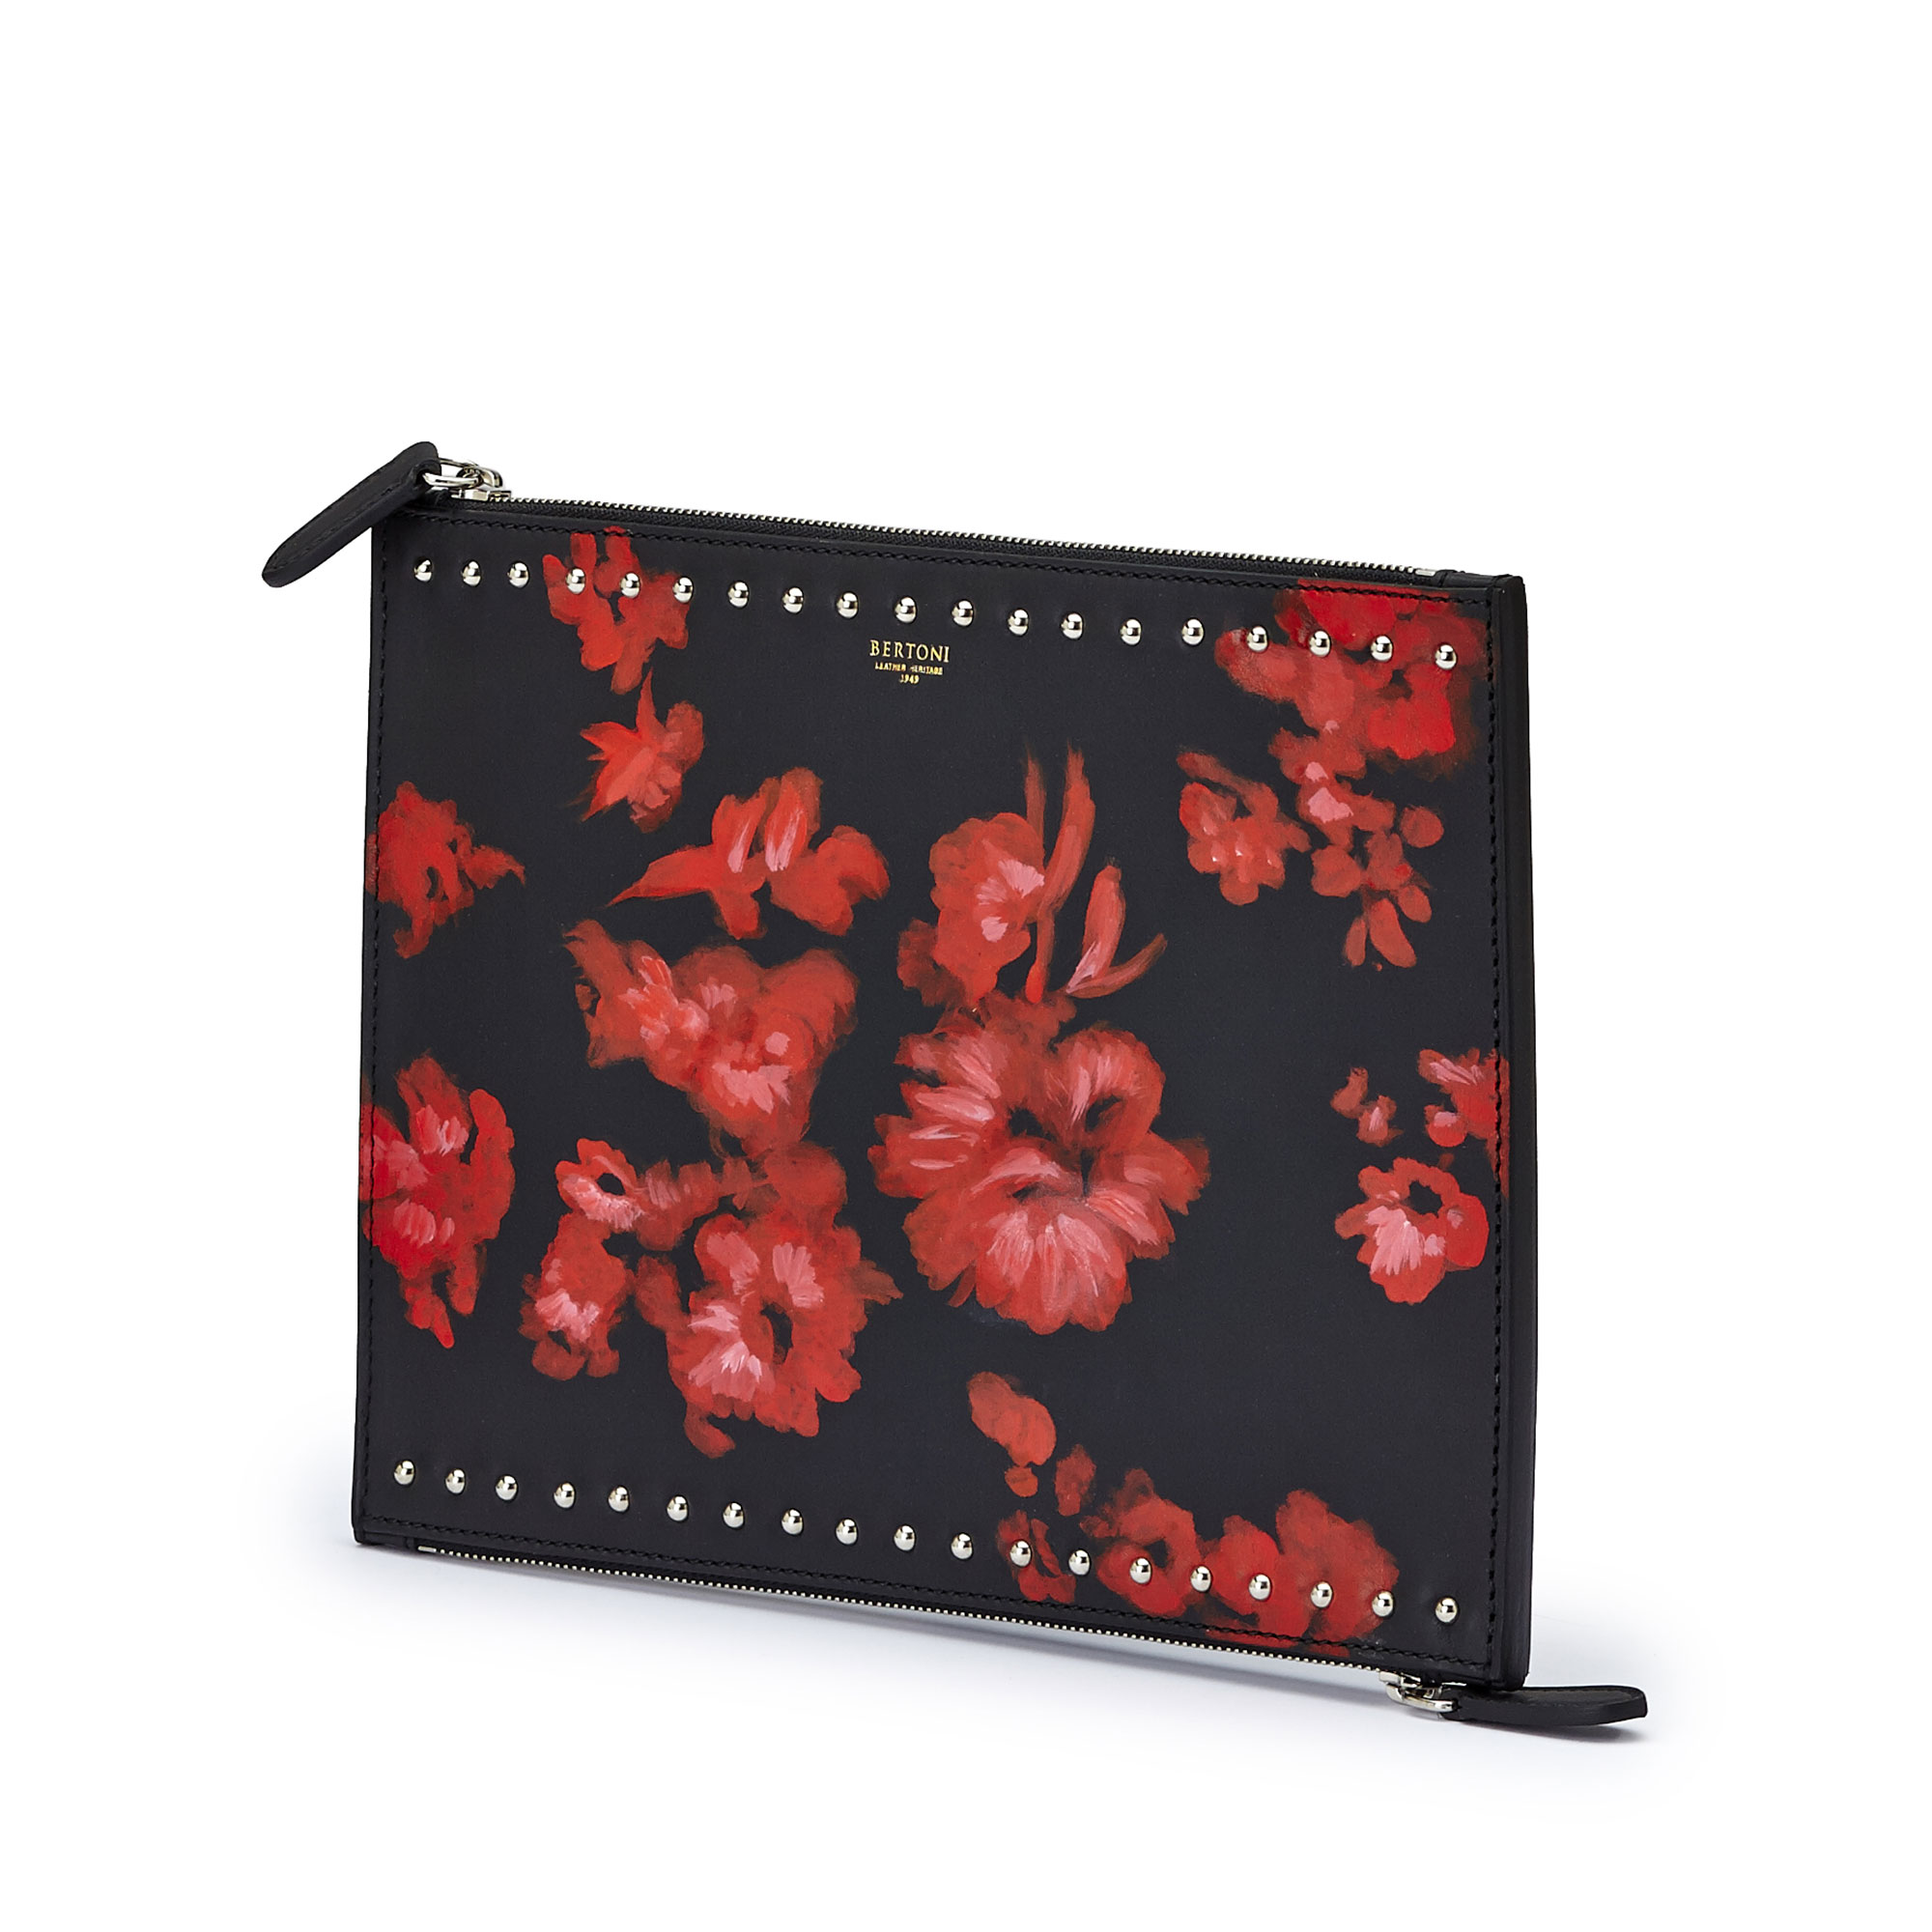 The black and red flowers french calf Zip Pouch by Bertoni 1949 02